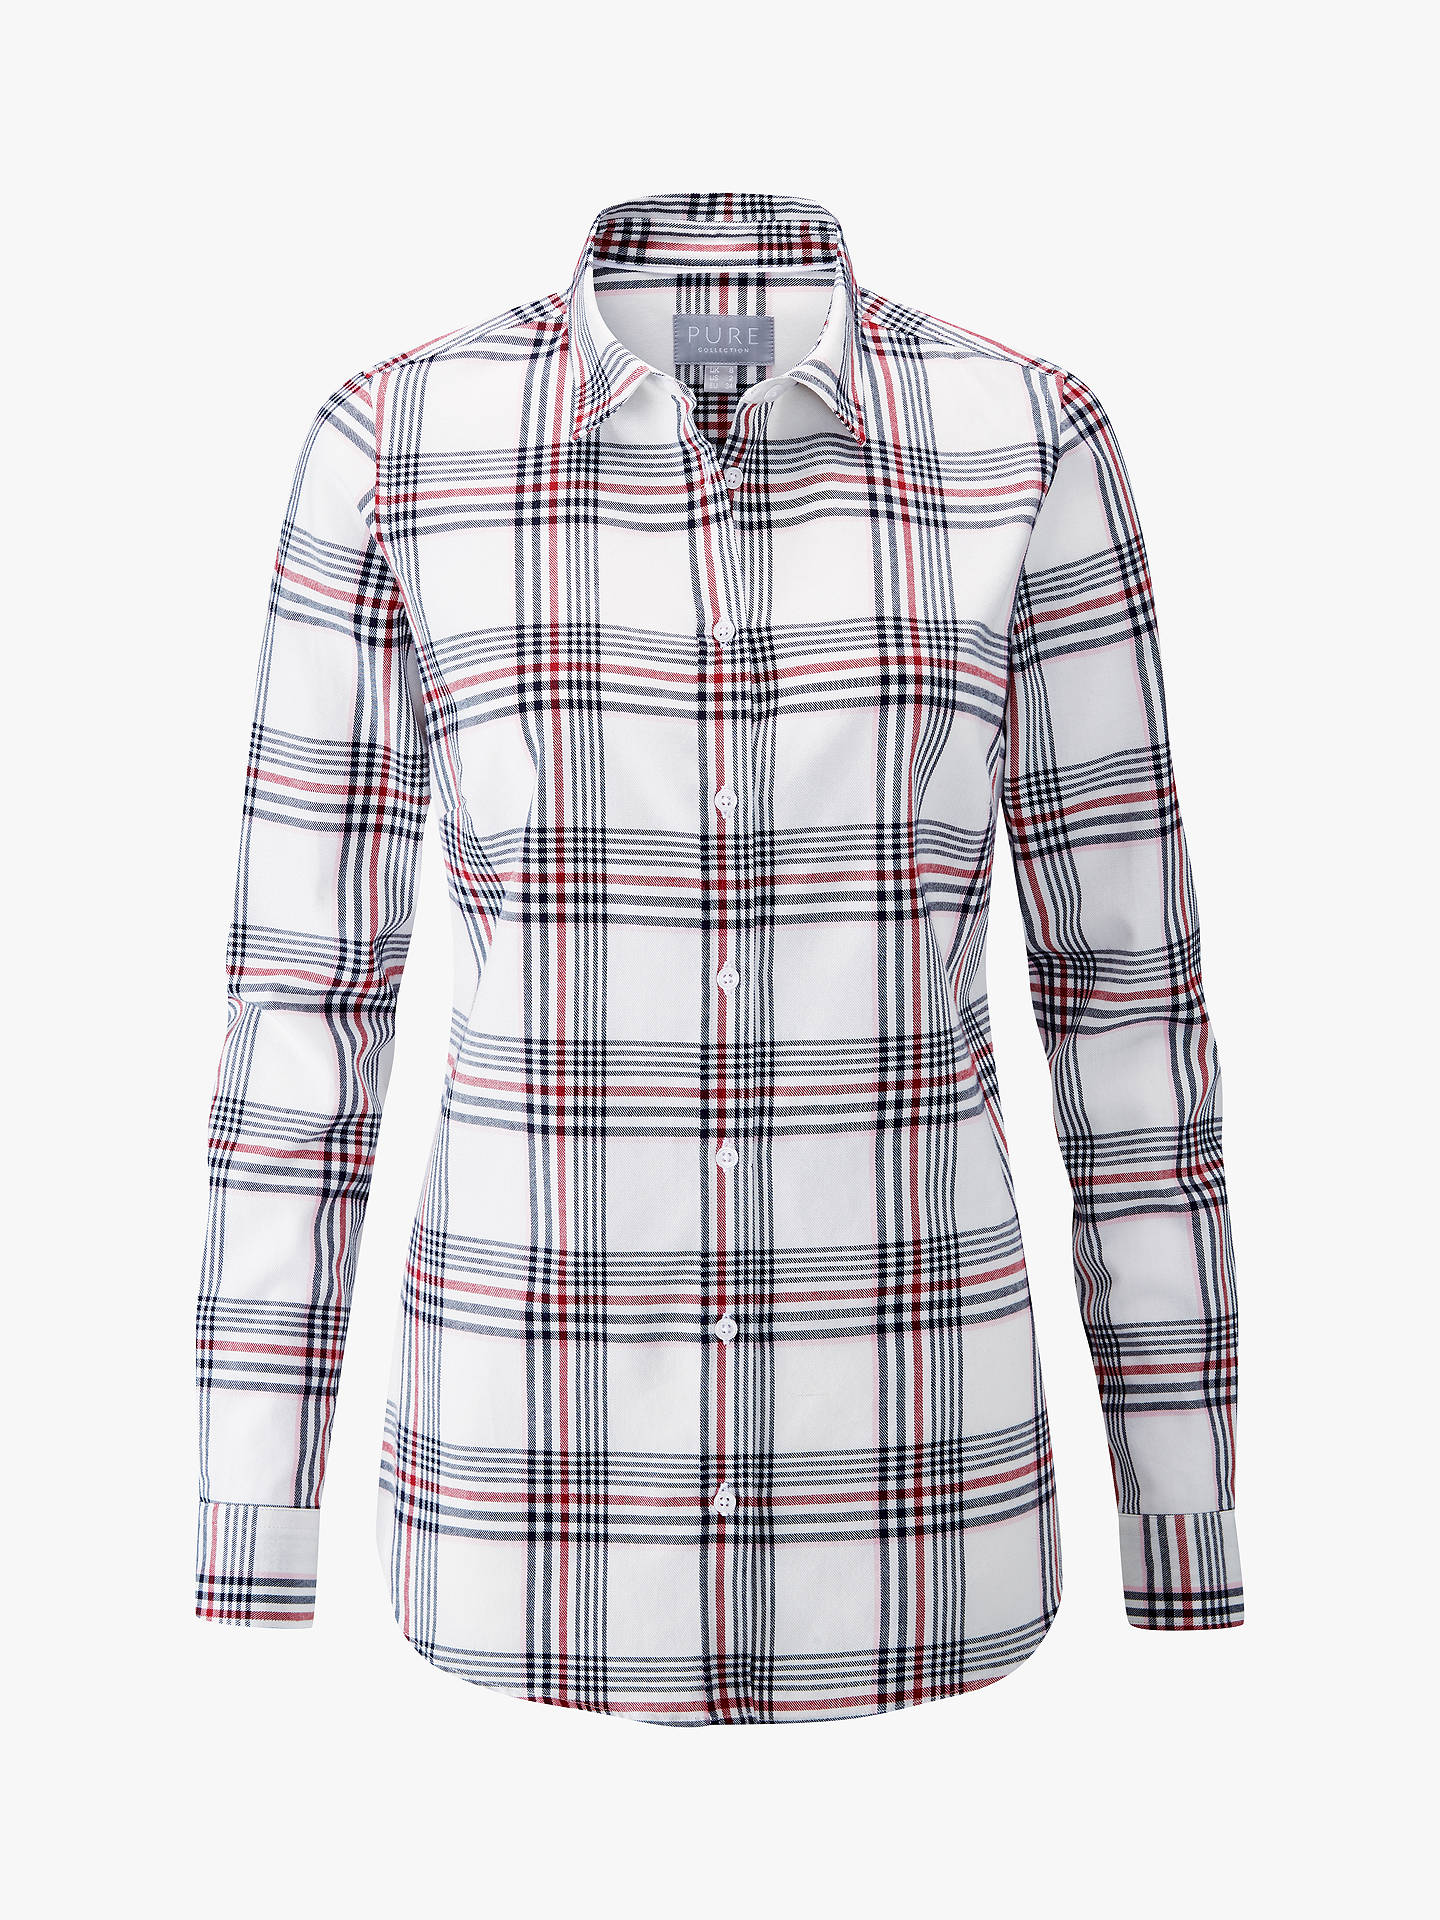 Buy Pure Collection Cotton Shirt, Check, 10 Online at johnlewis.com